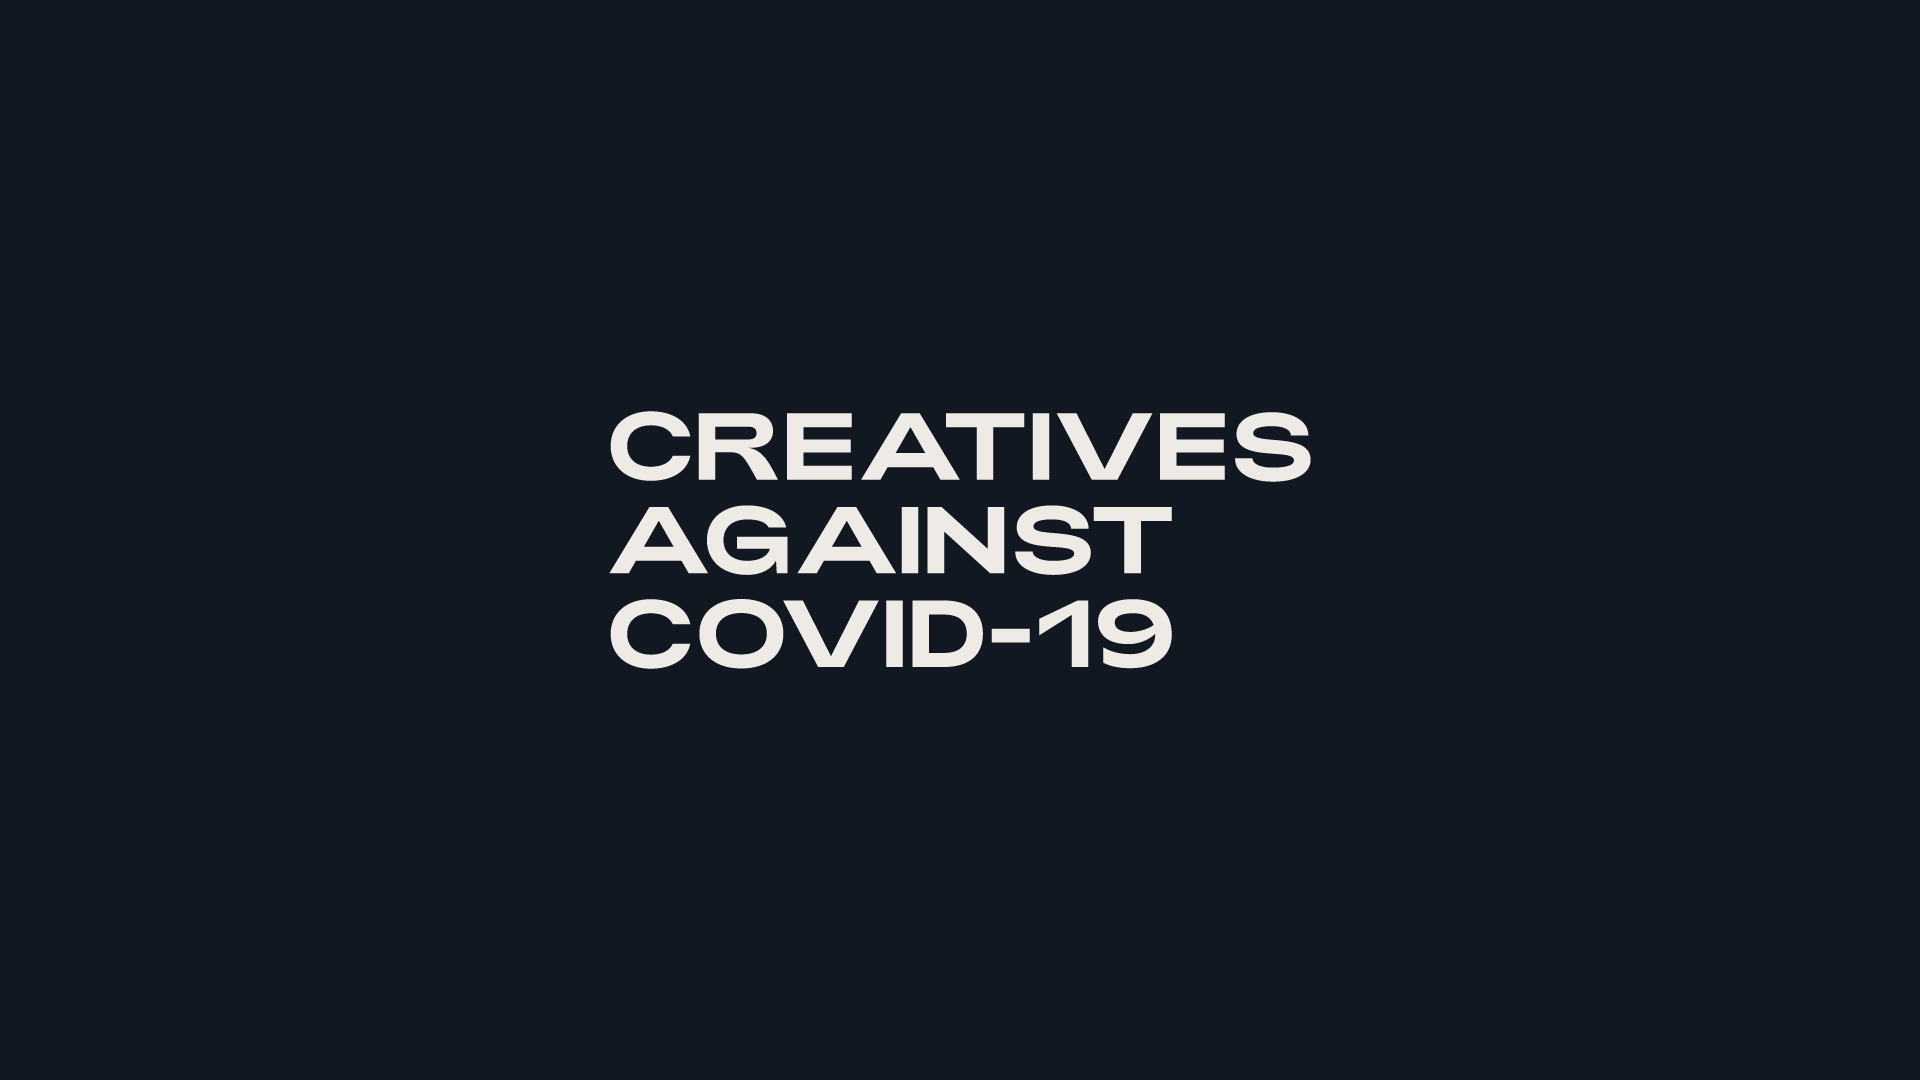 Cover image: Creatives Against Covid-19